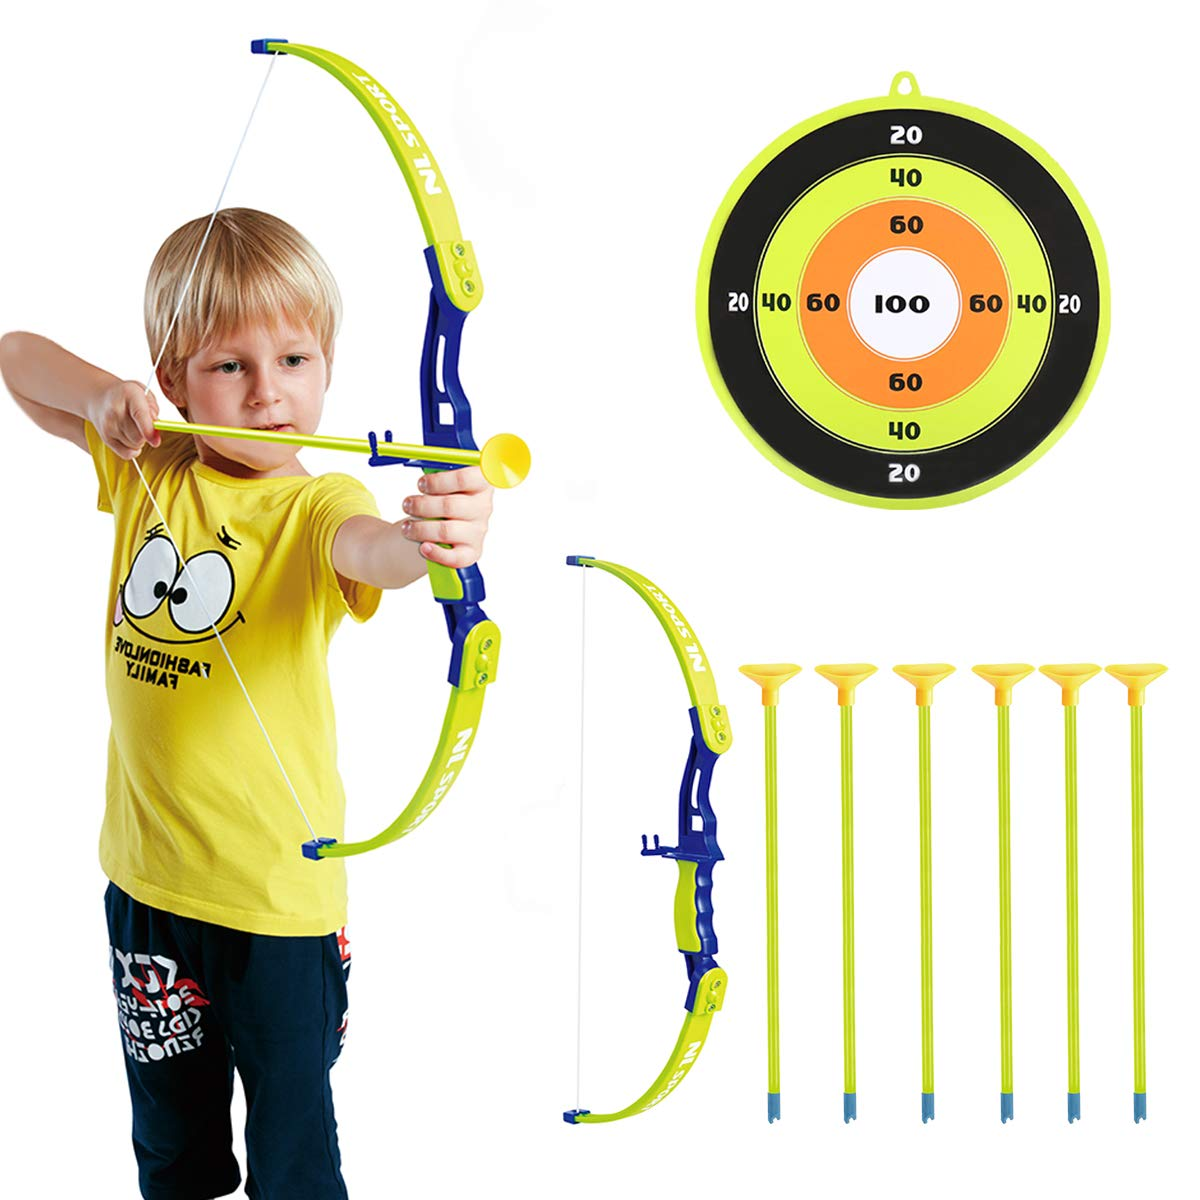 Conthfut Archery Outdoor Hunting Suction